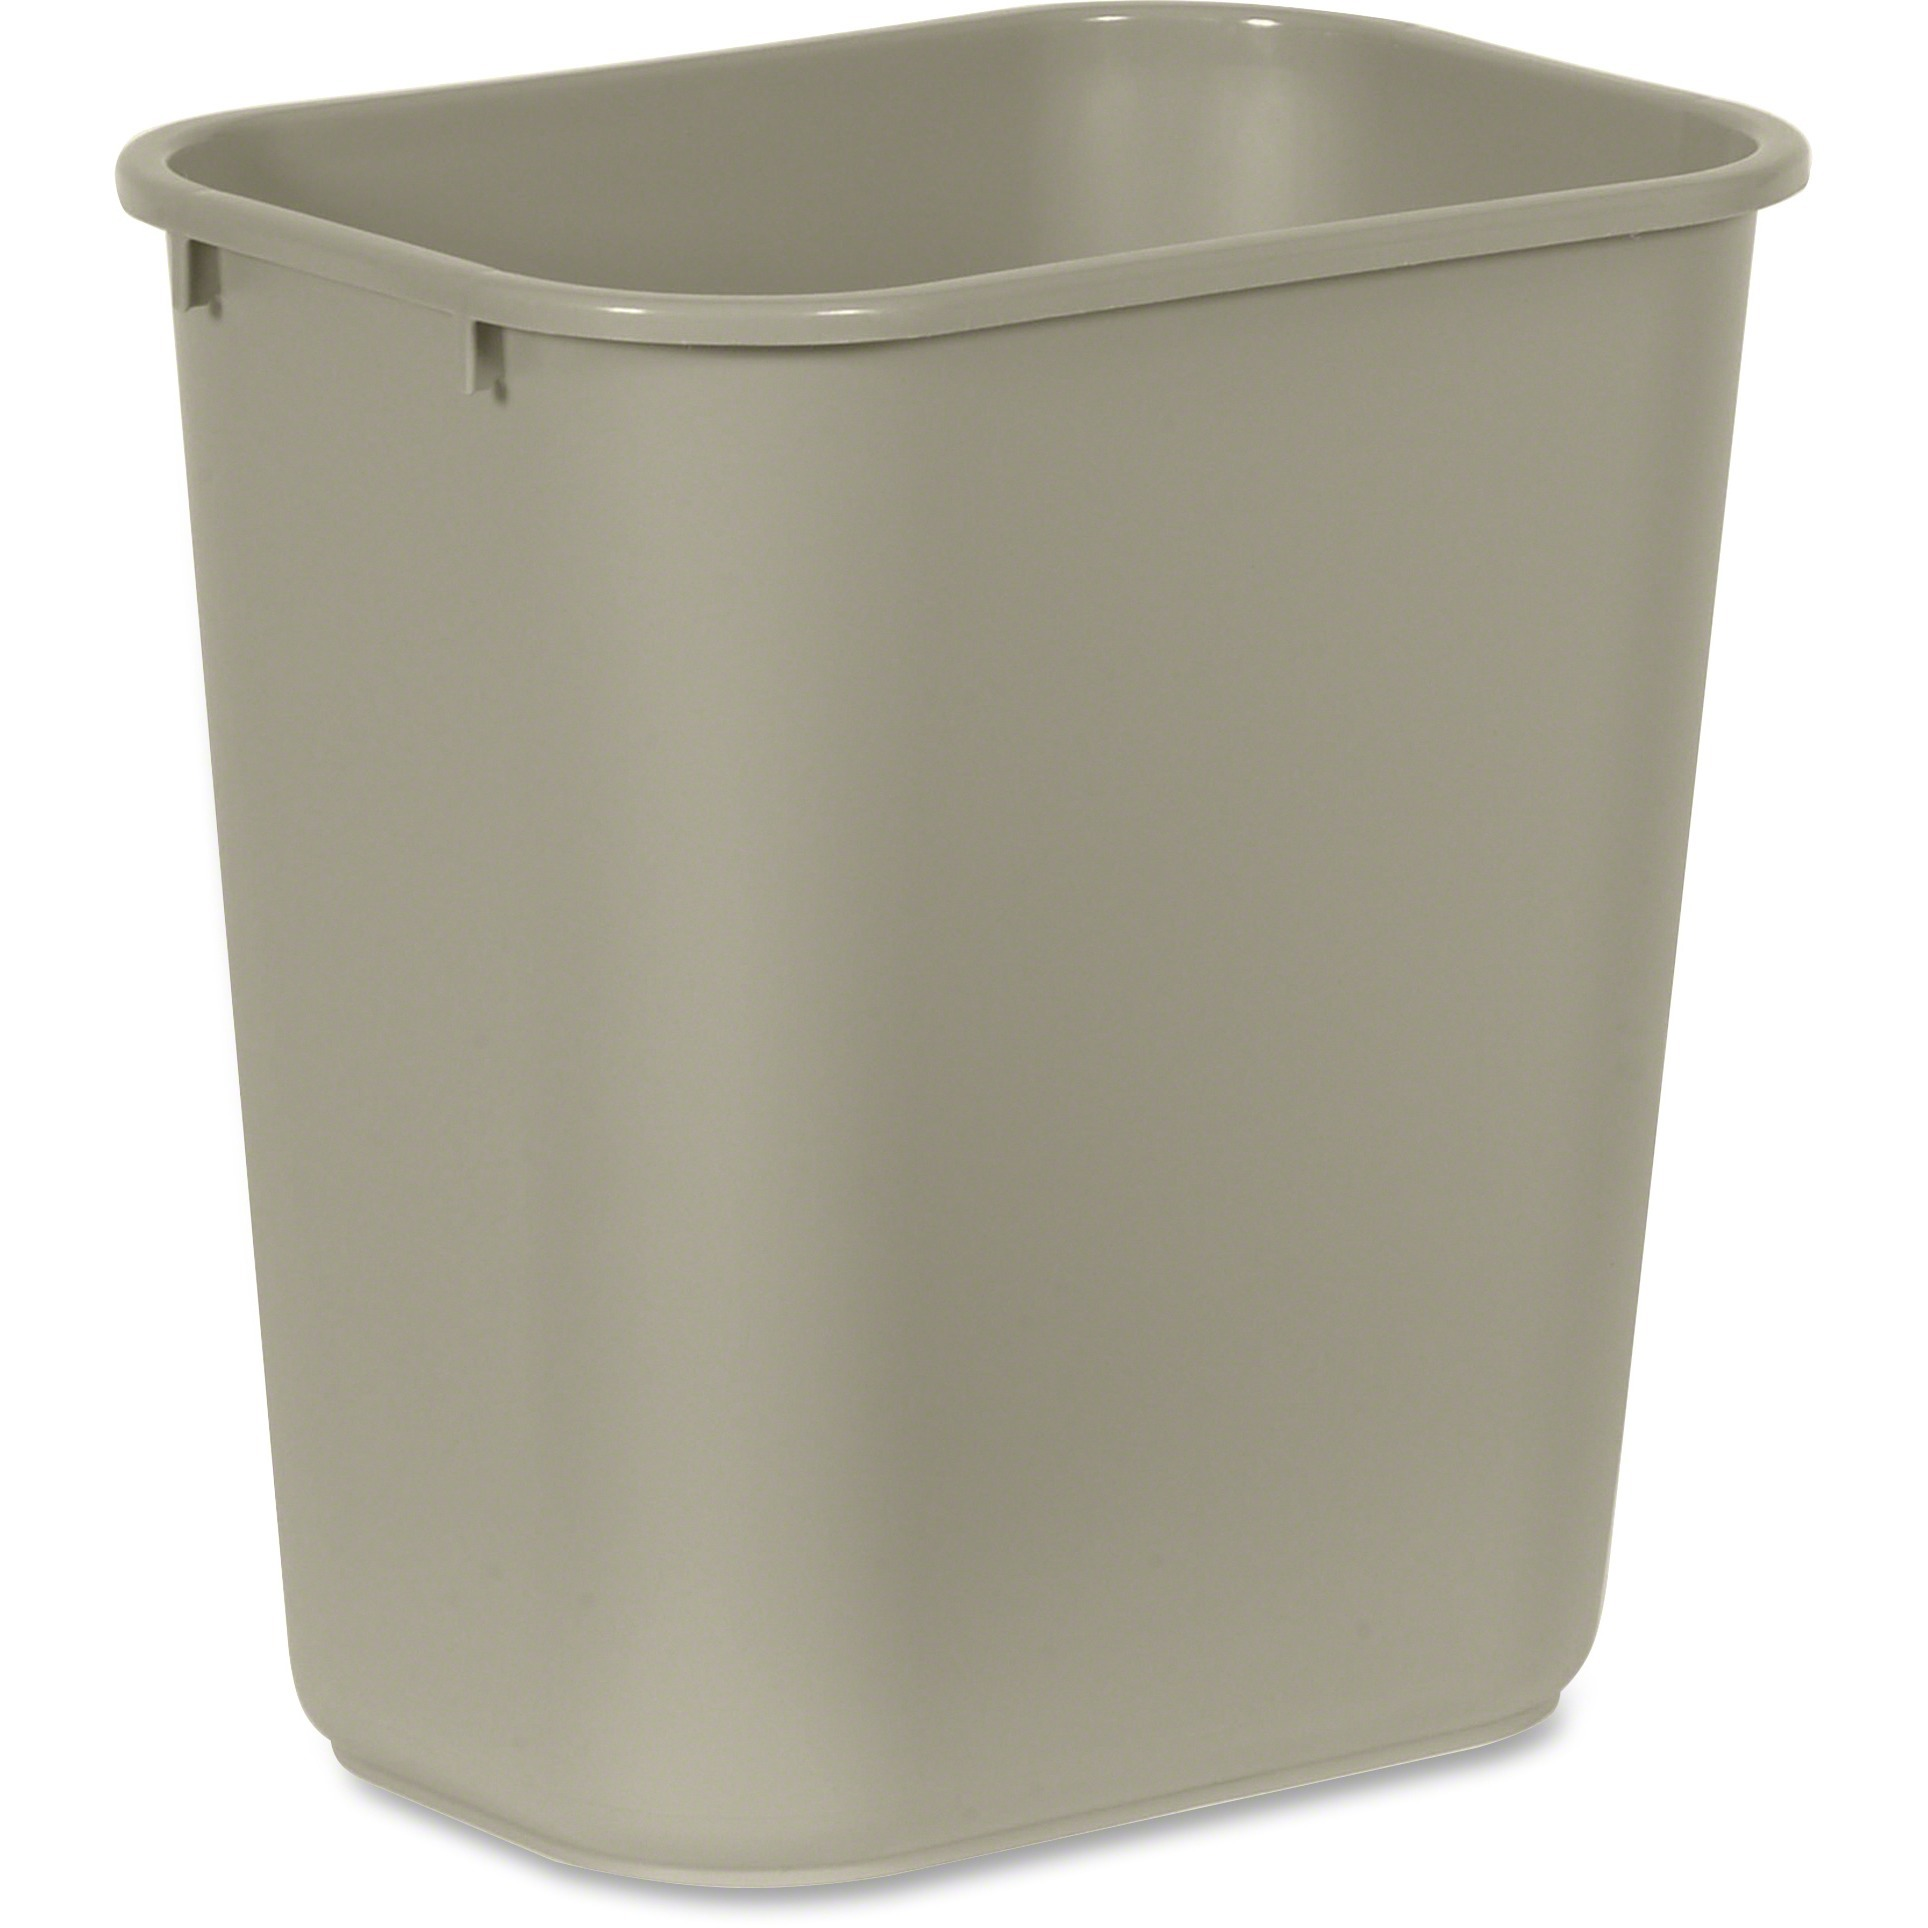 Rubbermaid Commercial, RCP295600BG, Standard Series Wastebaskets, 1, Beige